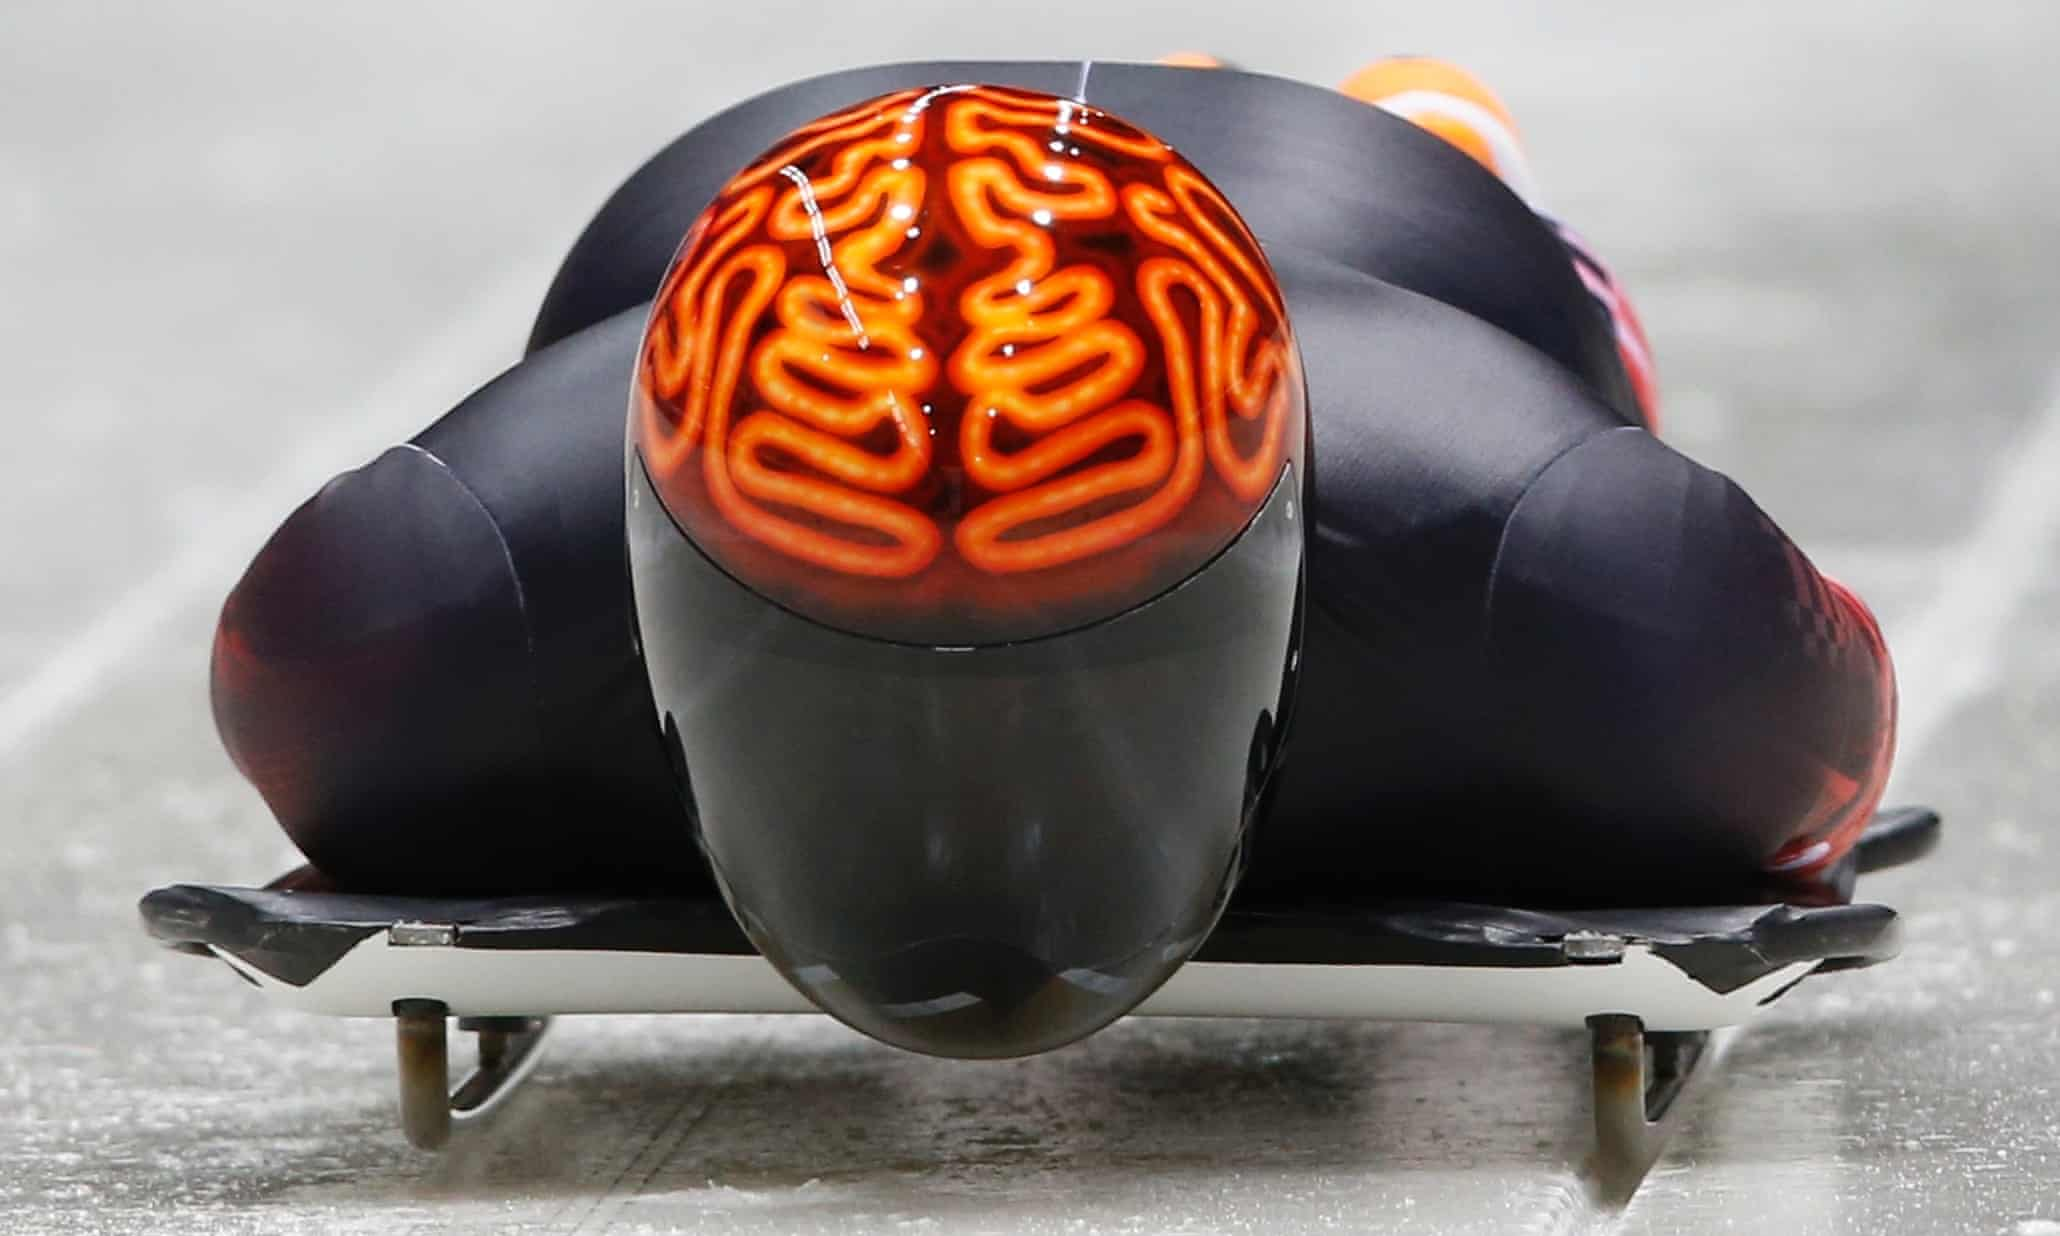 Sochi 2014: 10 amazing helmet designs at the Winter Olympics – in pictures